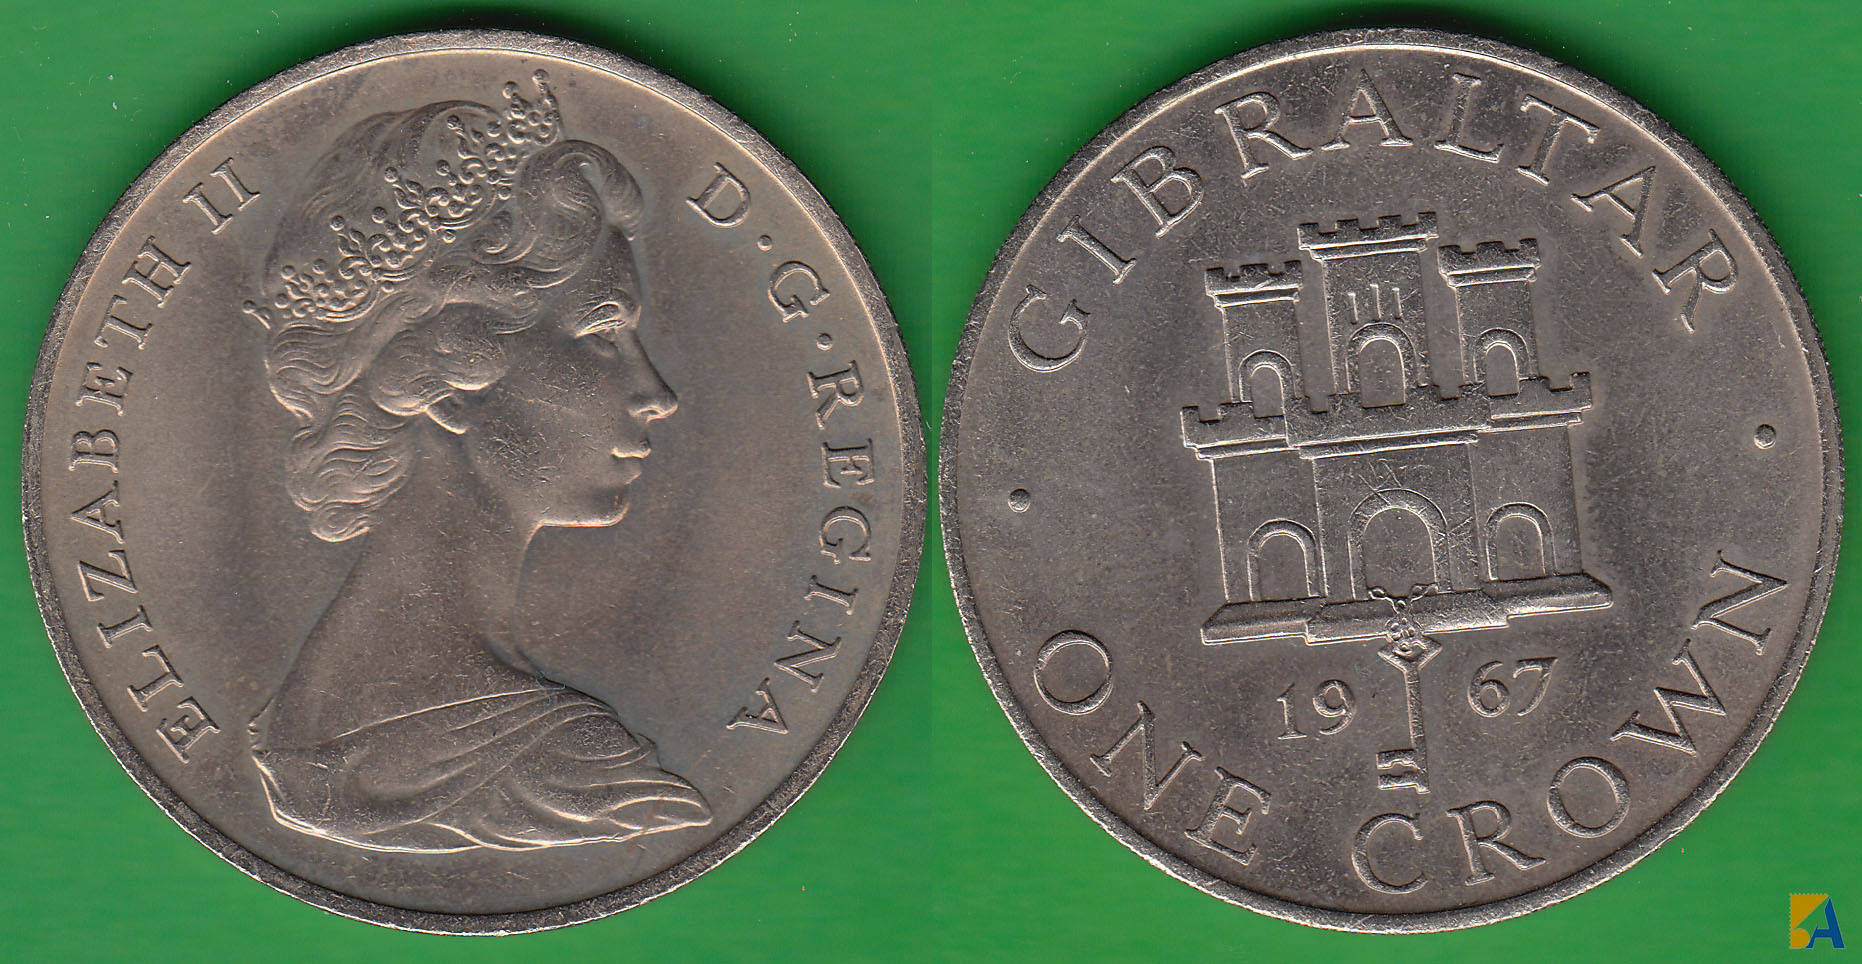 GIBRALTAR. 1 CORONA (CROWN) DE 1967. (2)